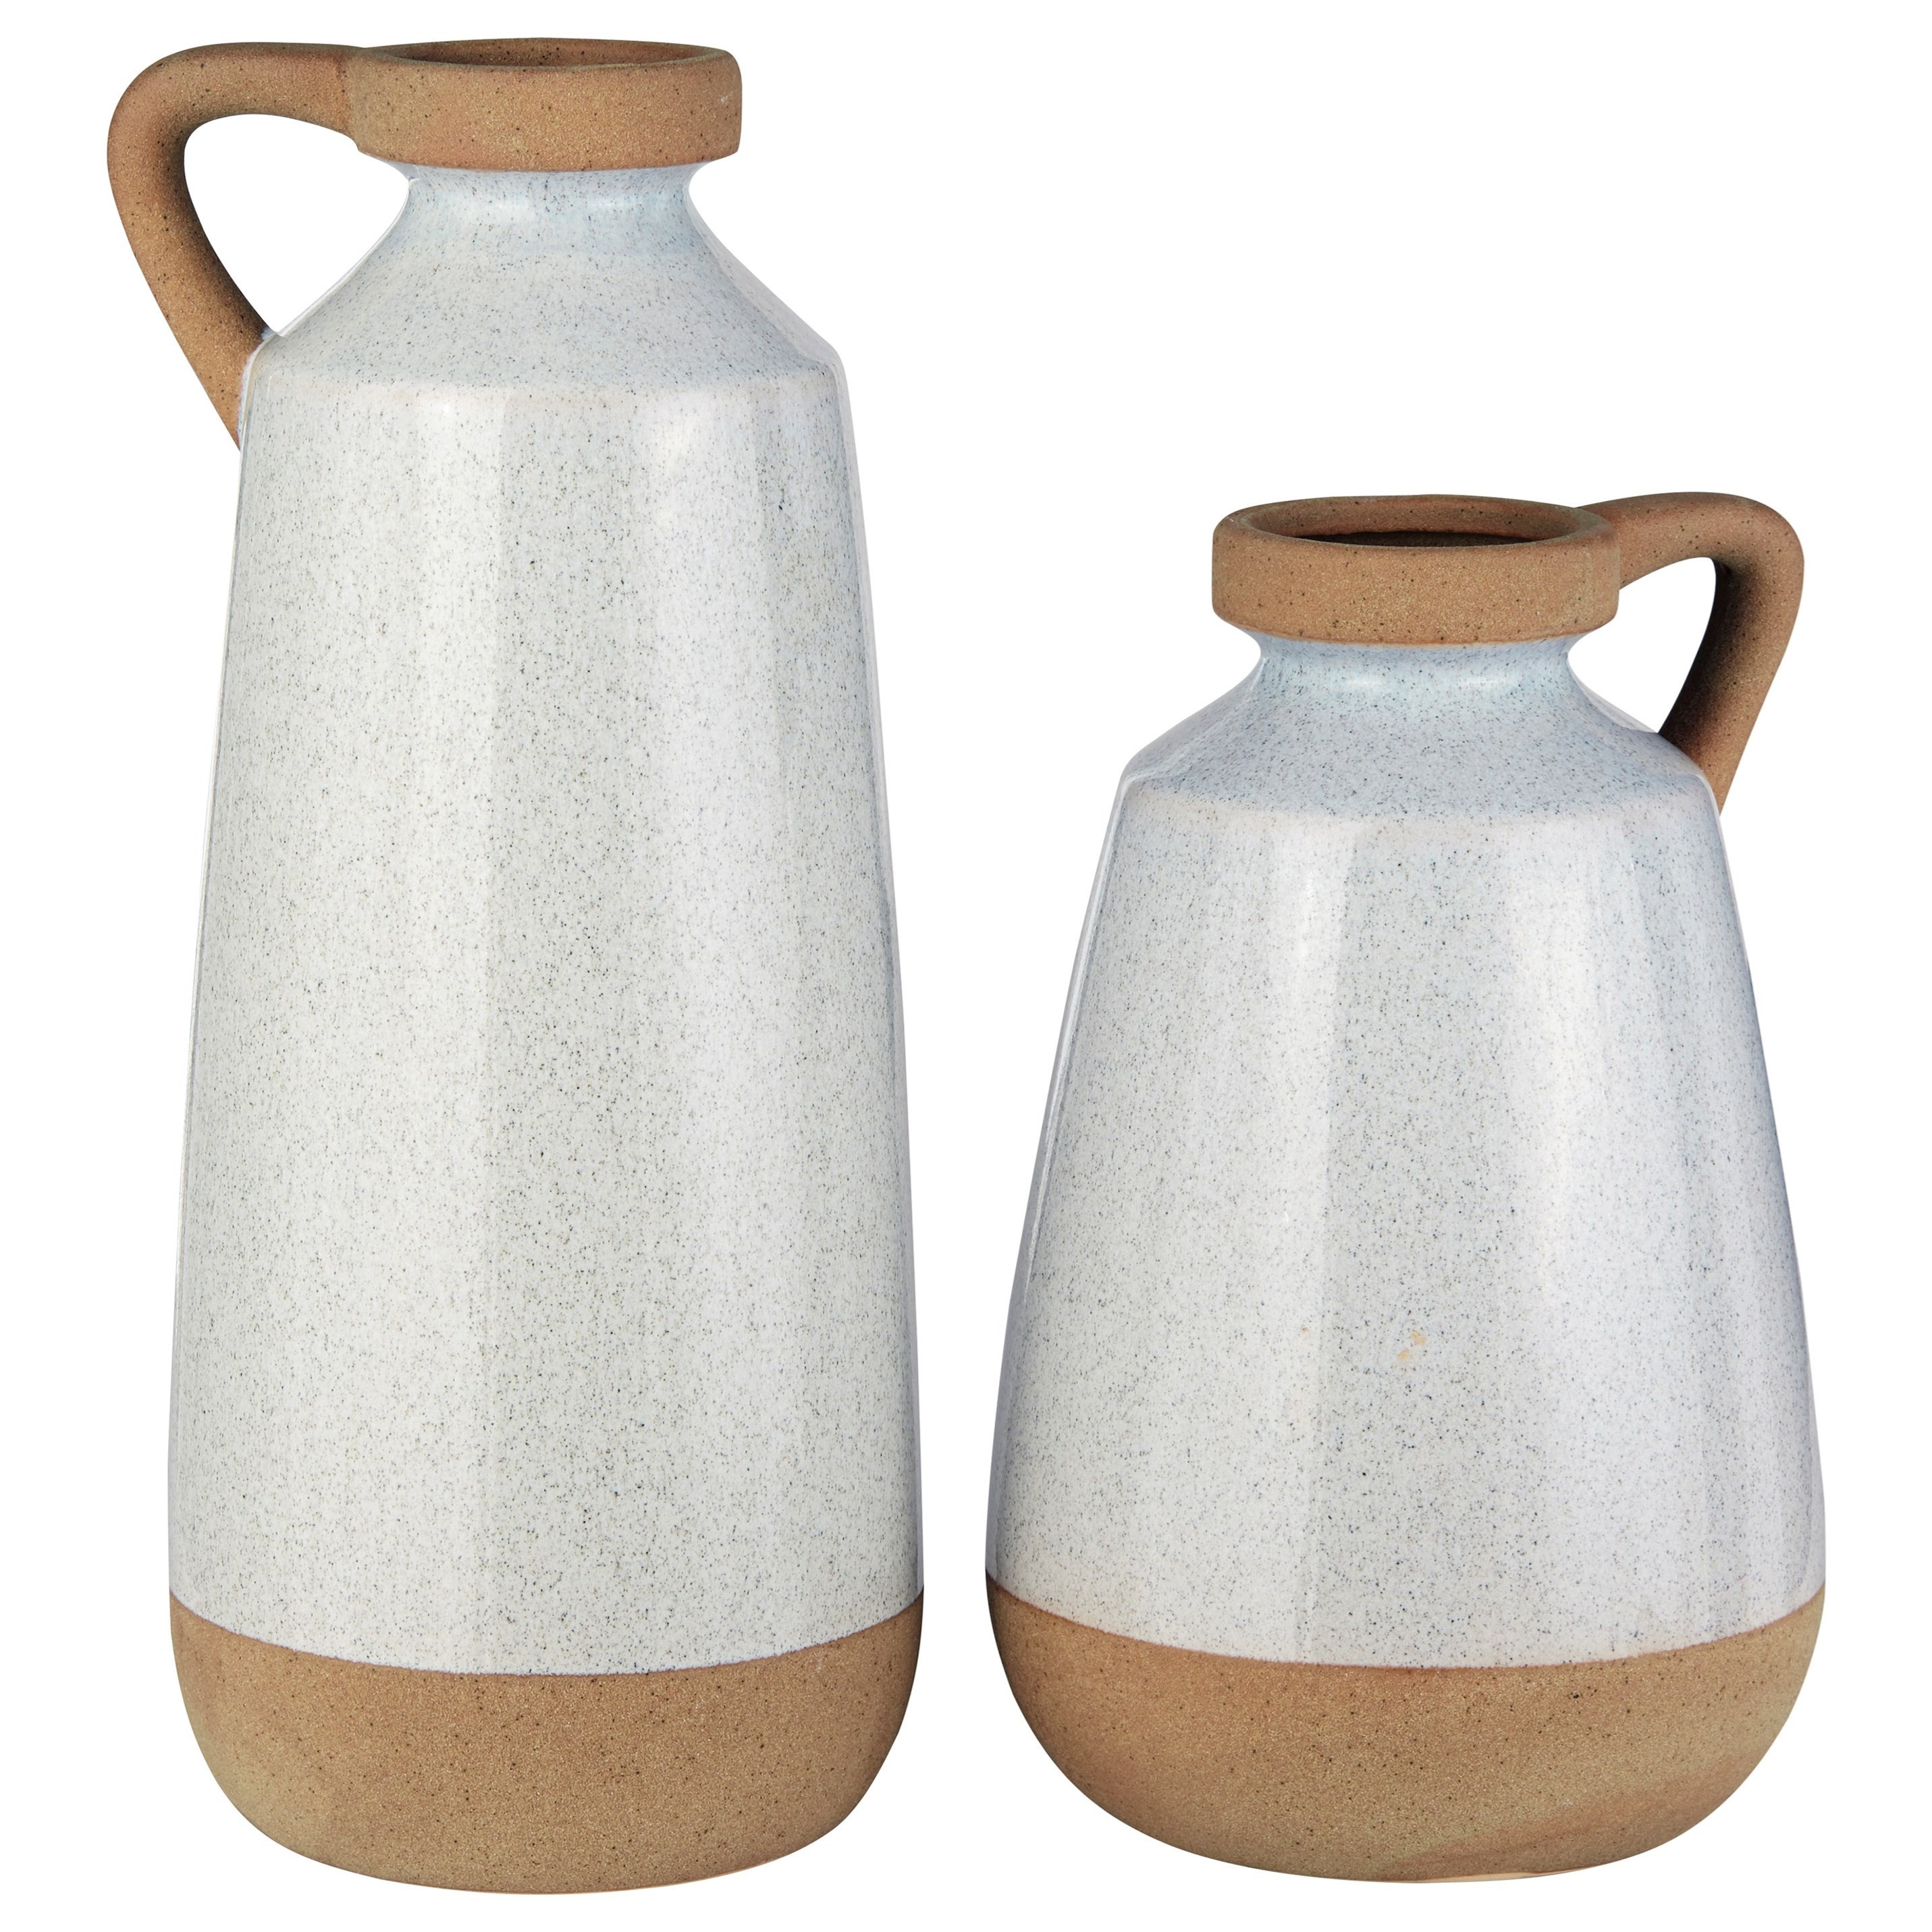 Accents Tilbury Cream Glazed Ceramic Vase Set by Signature Design by Ashley at Pilgrim Furniture City